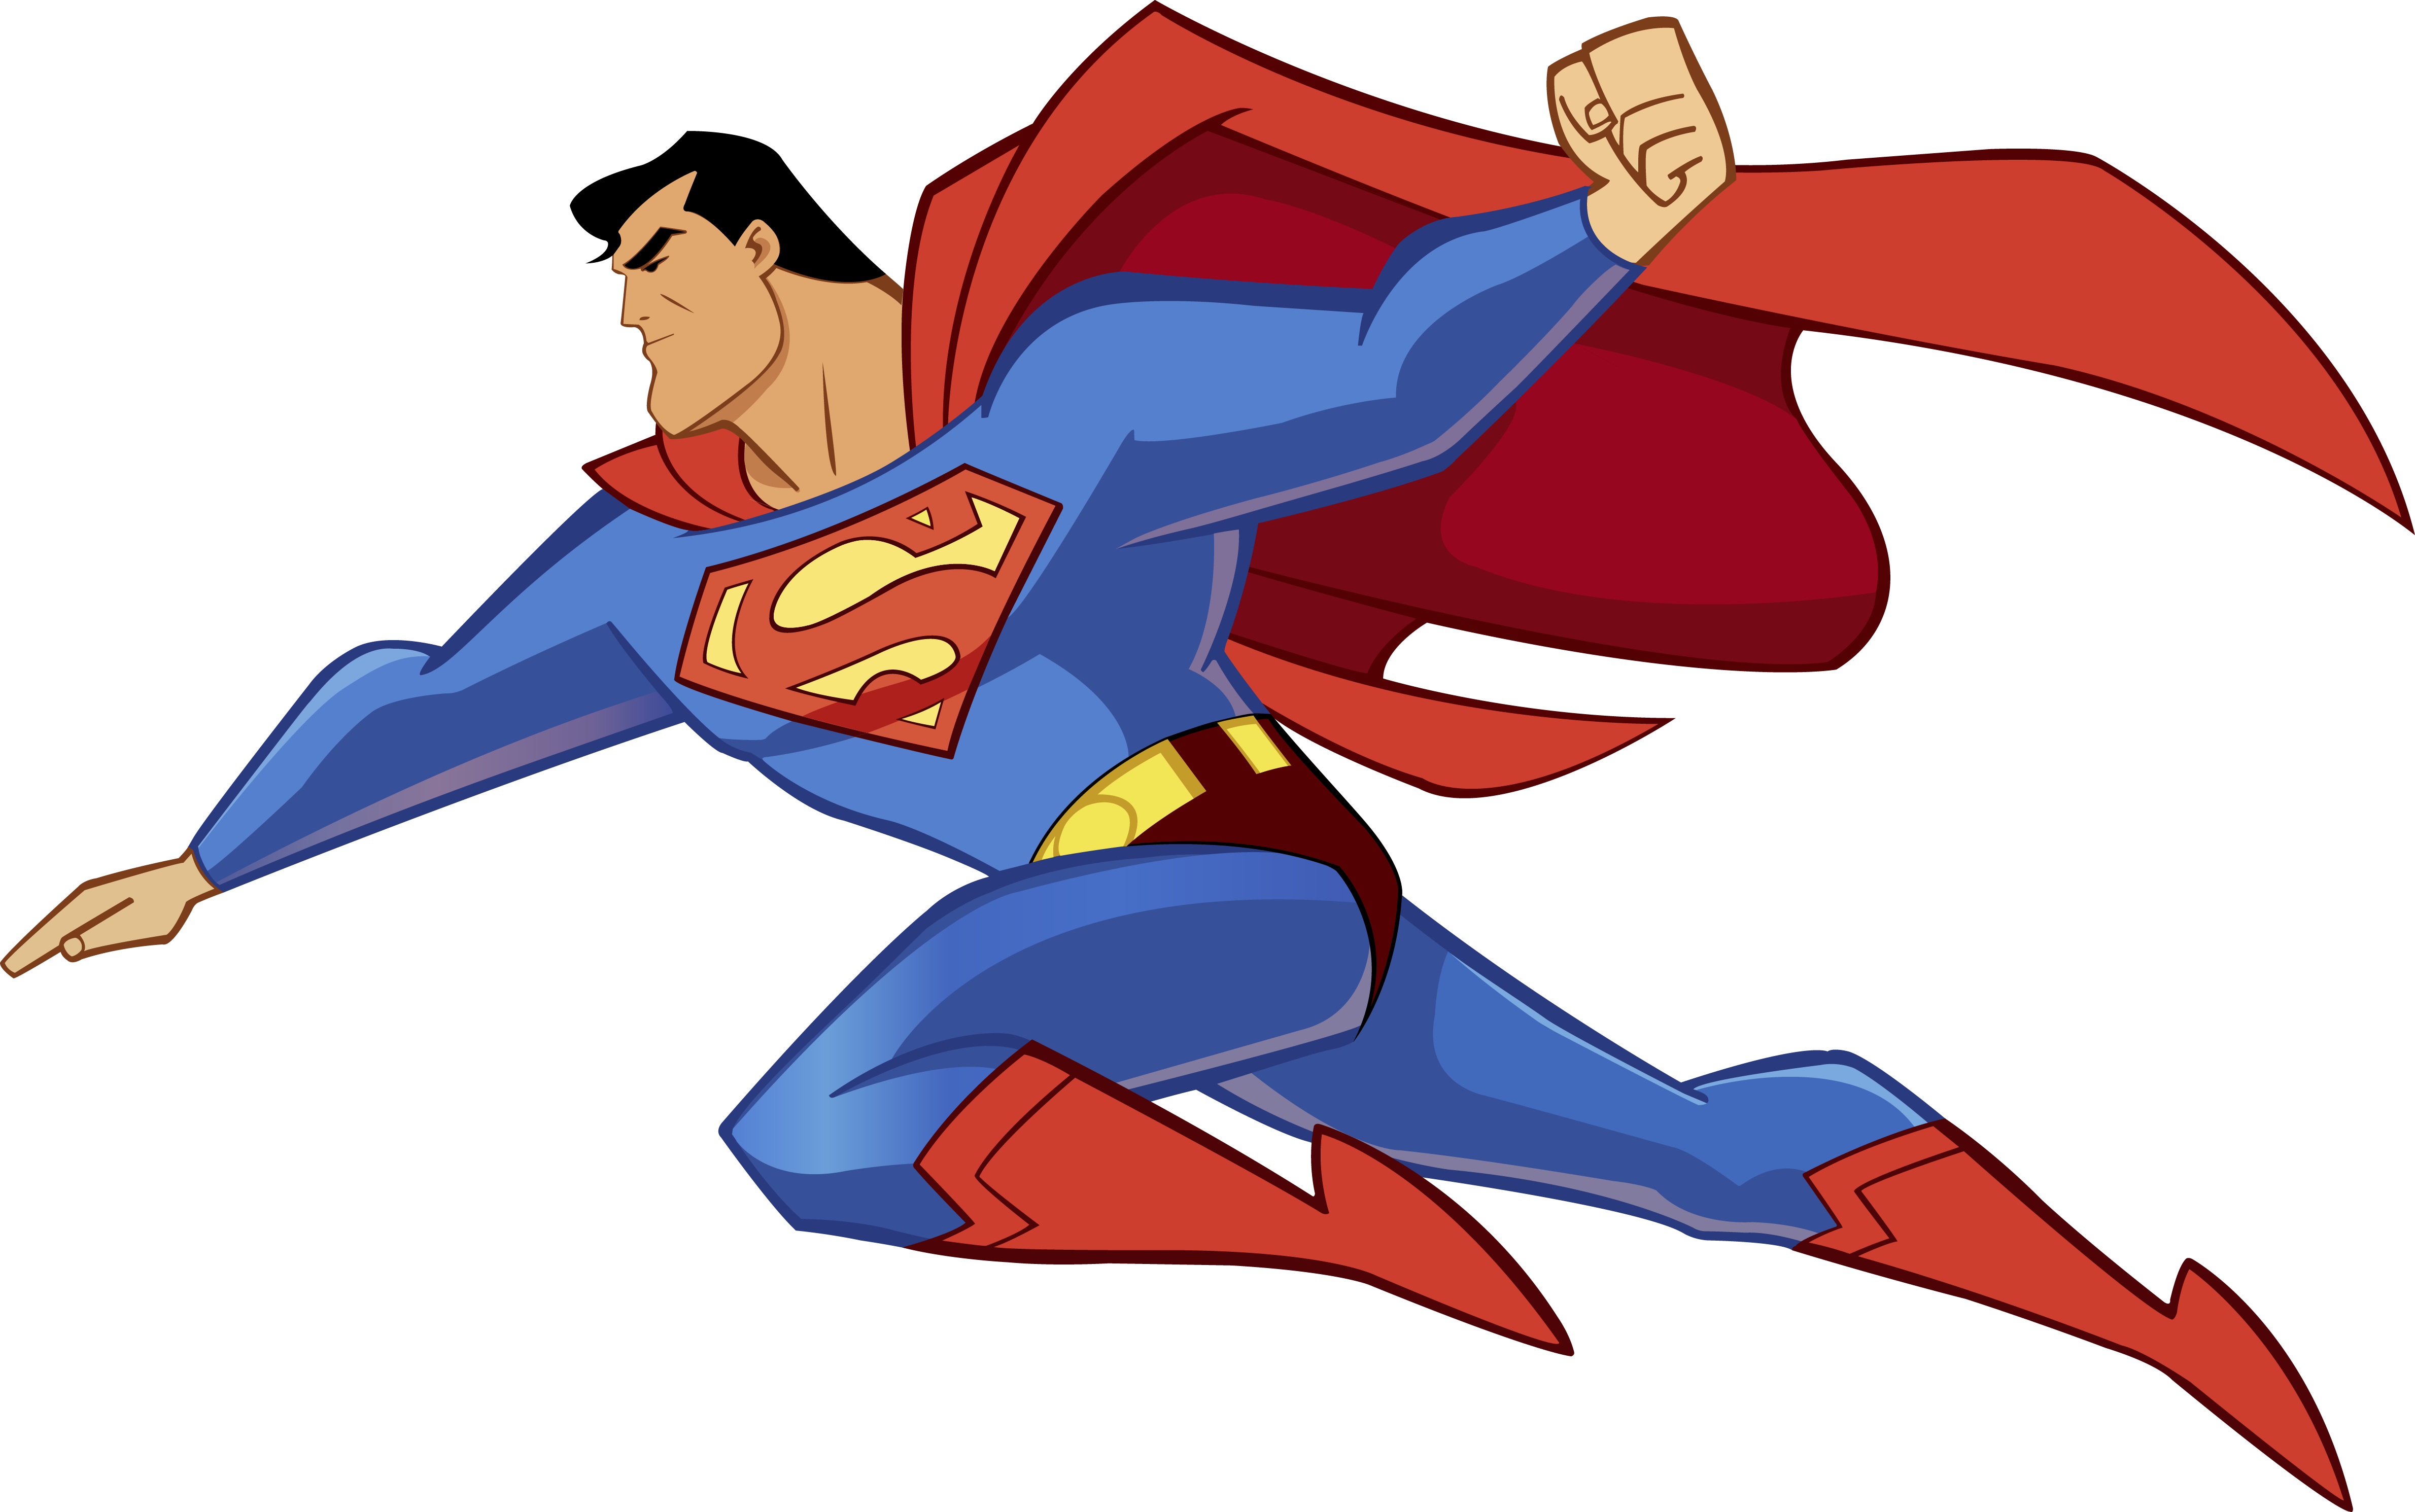 Flying vector superhero. A project for my